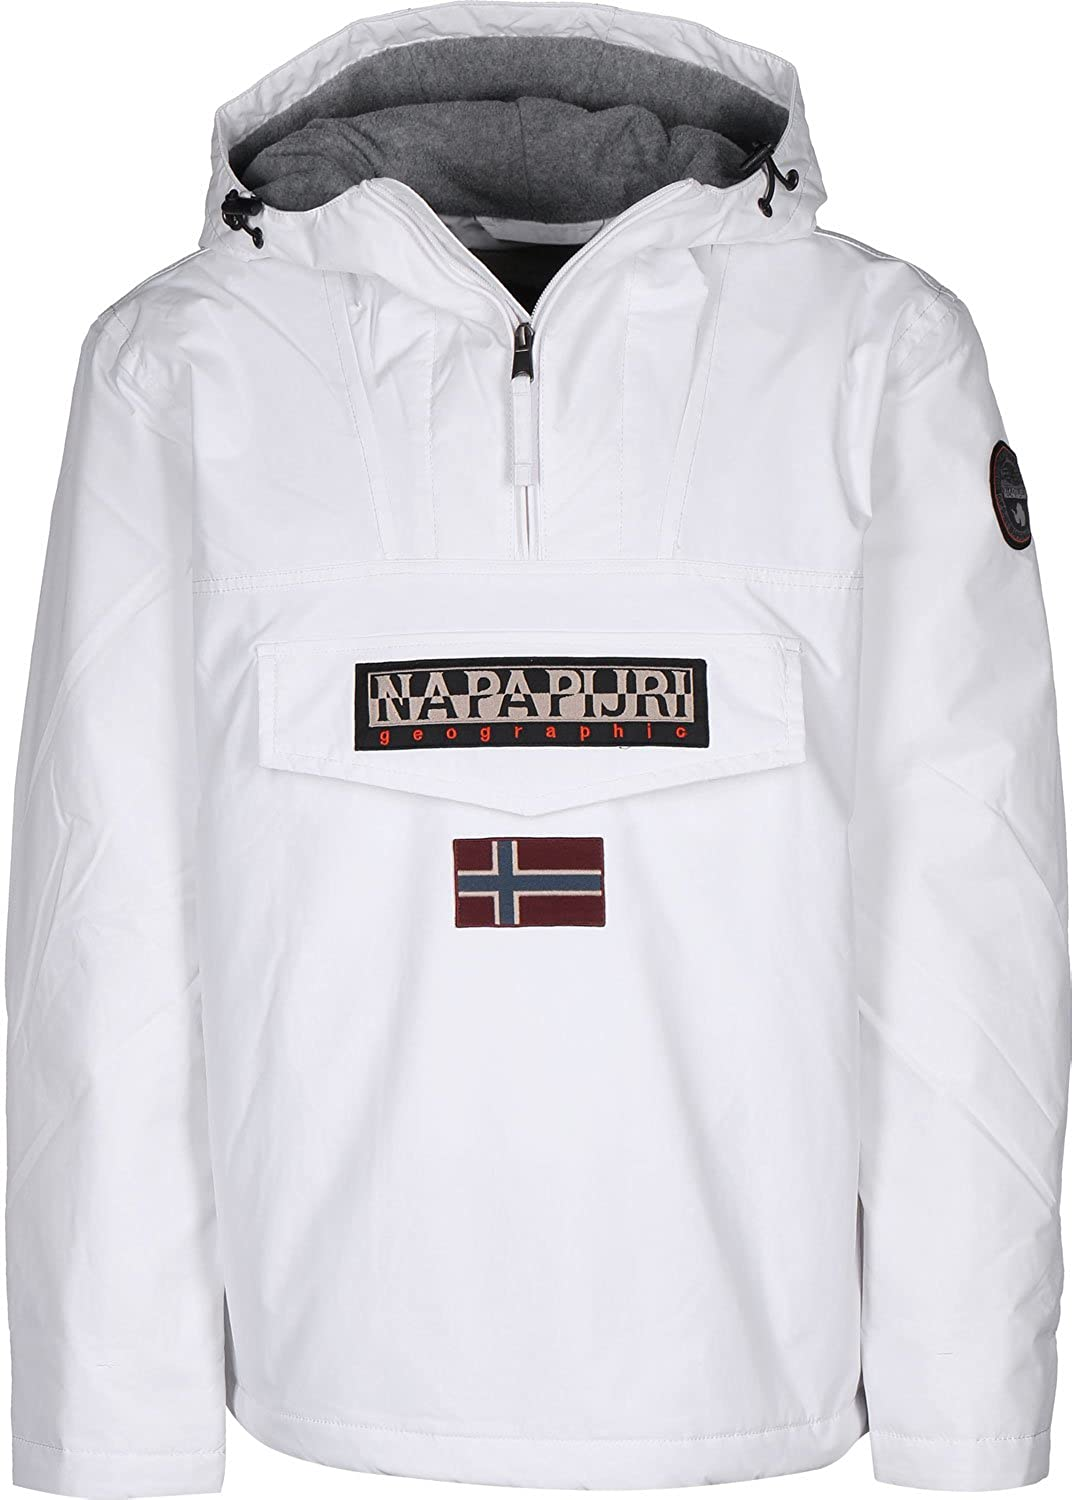 Napapijri Rainforest Pocket Chaqueta para Hombre